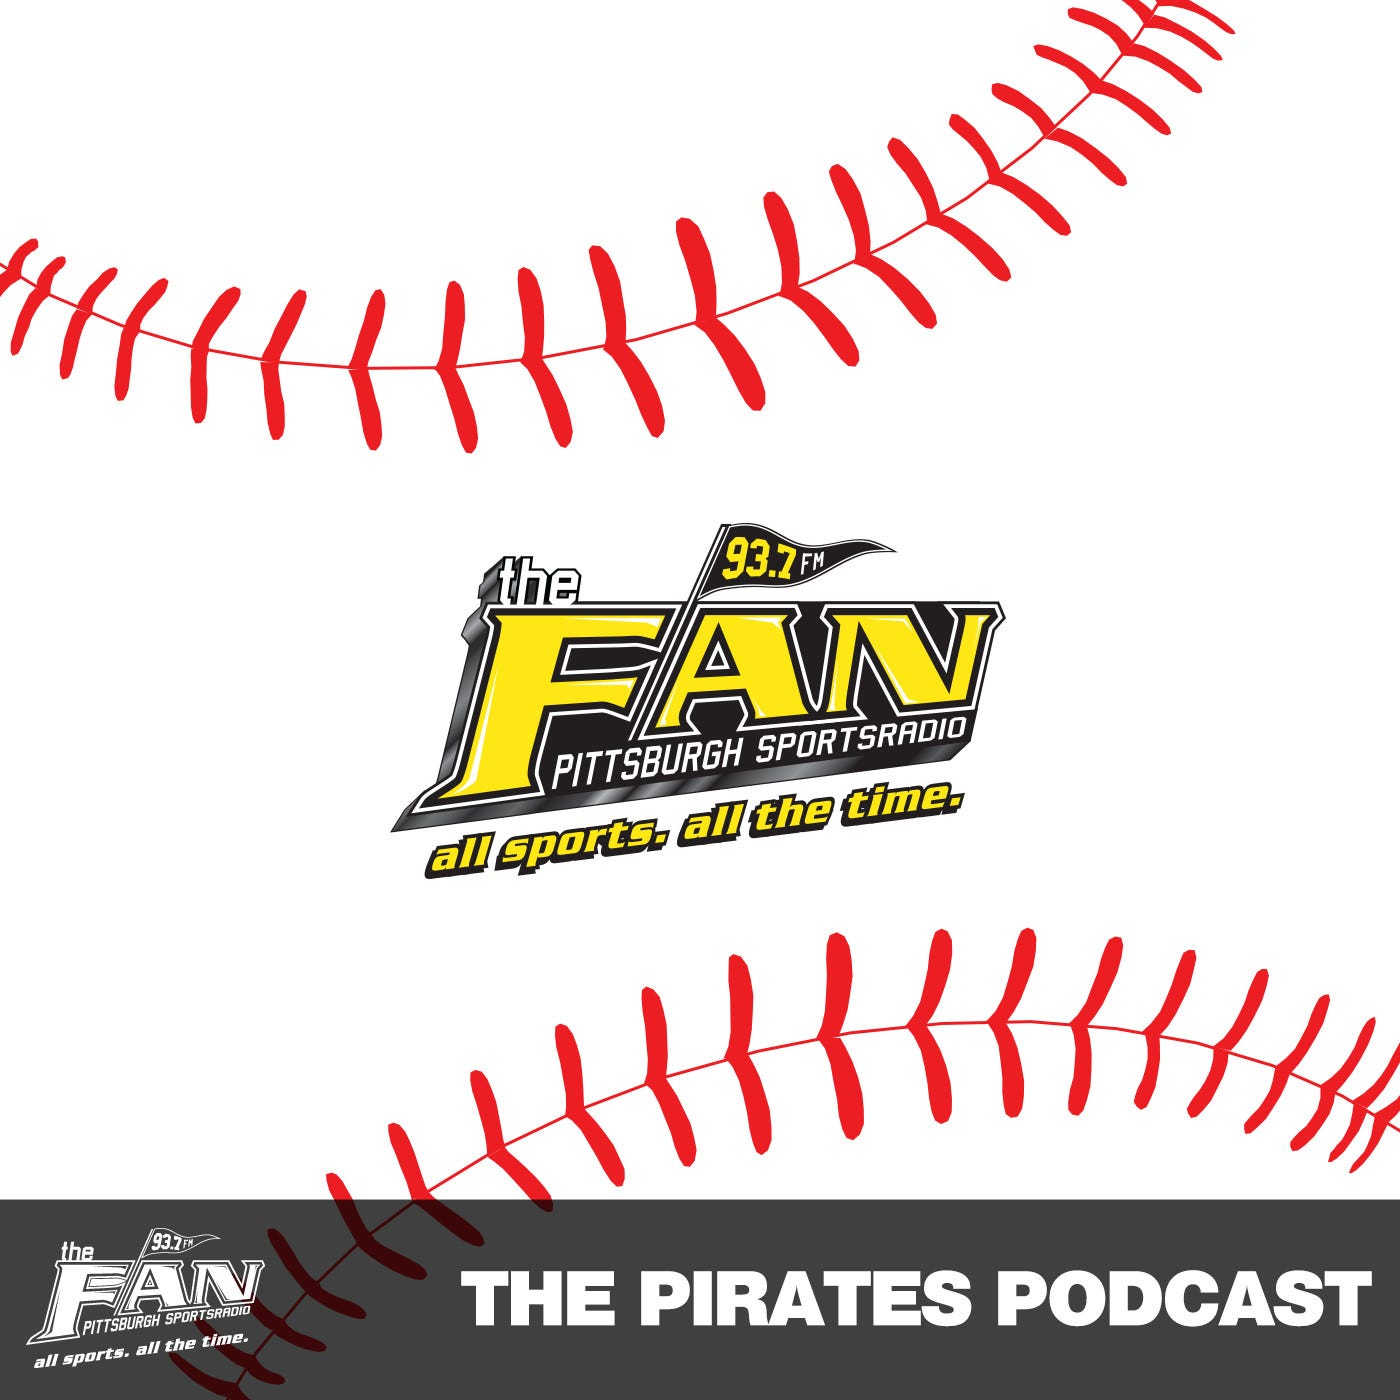 The Pirates Podcast